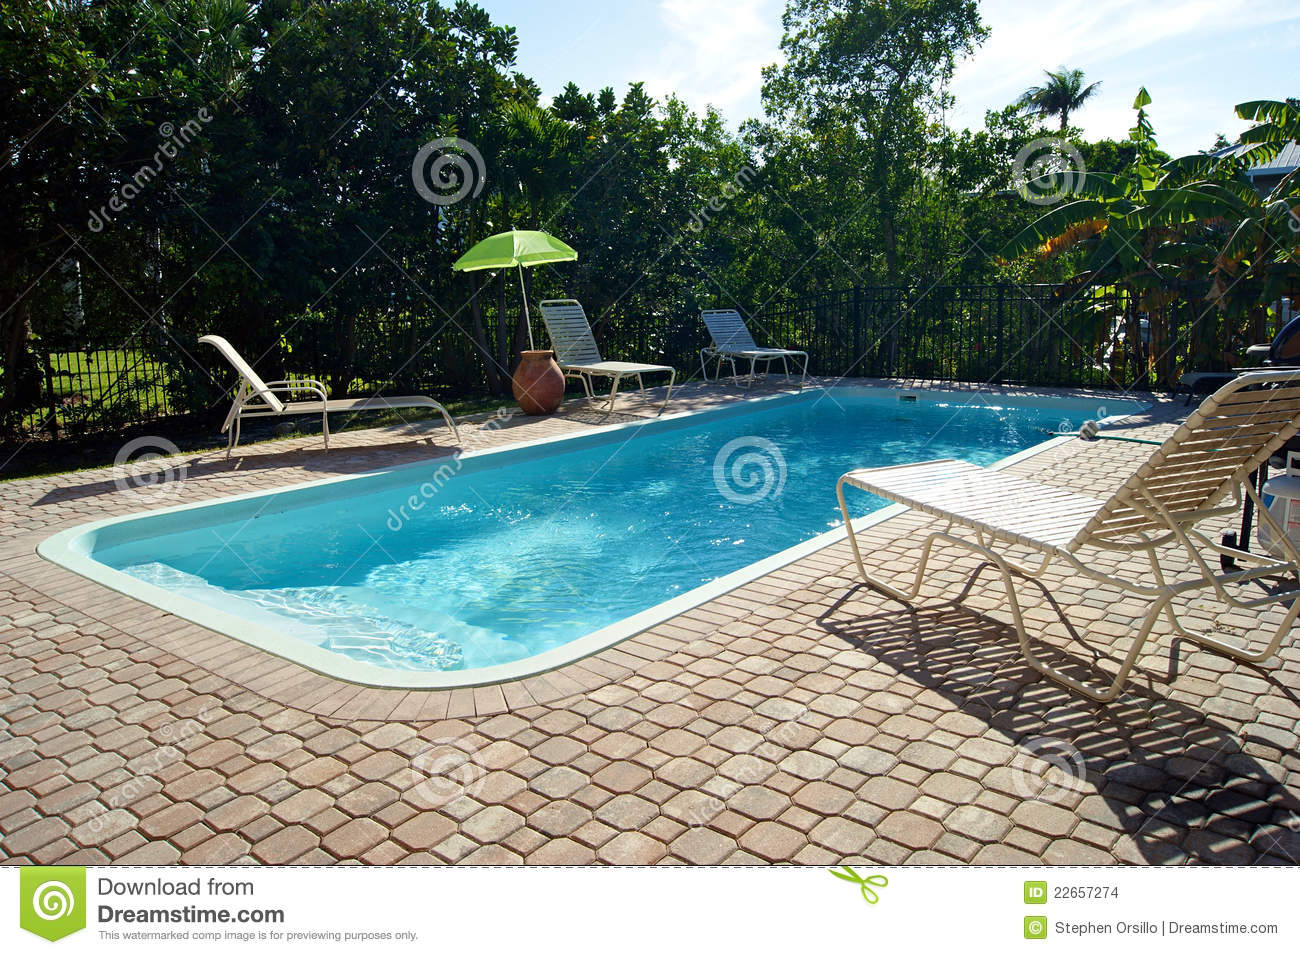 Pool Deck Chairs Rectangular Swimming Pool With Deck Chairs Stock Photo